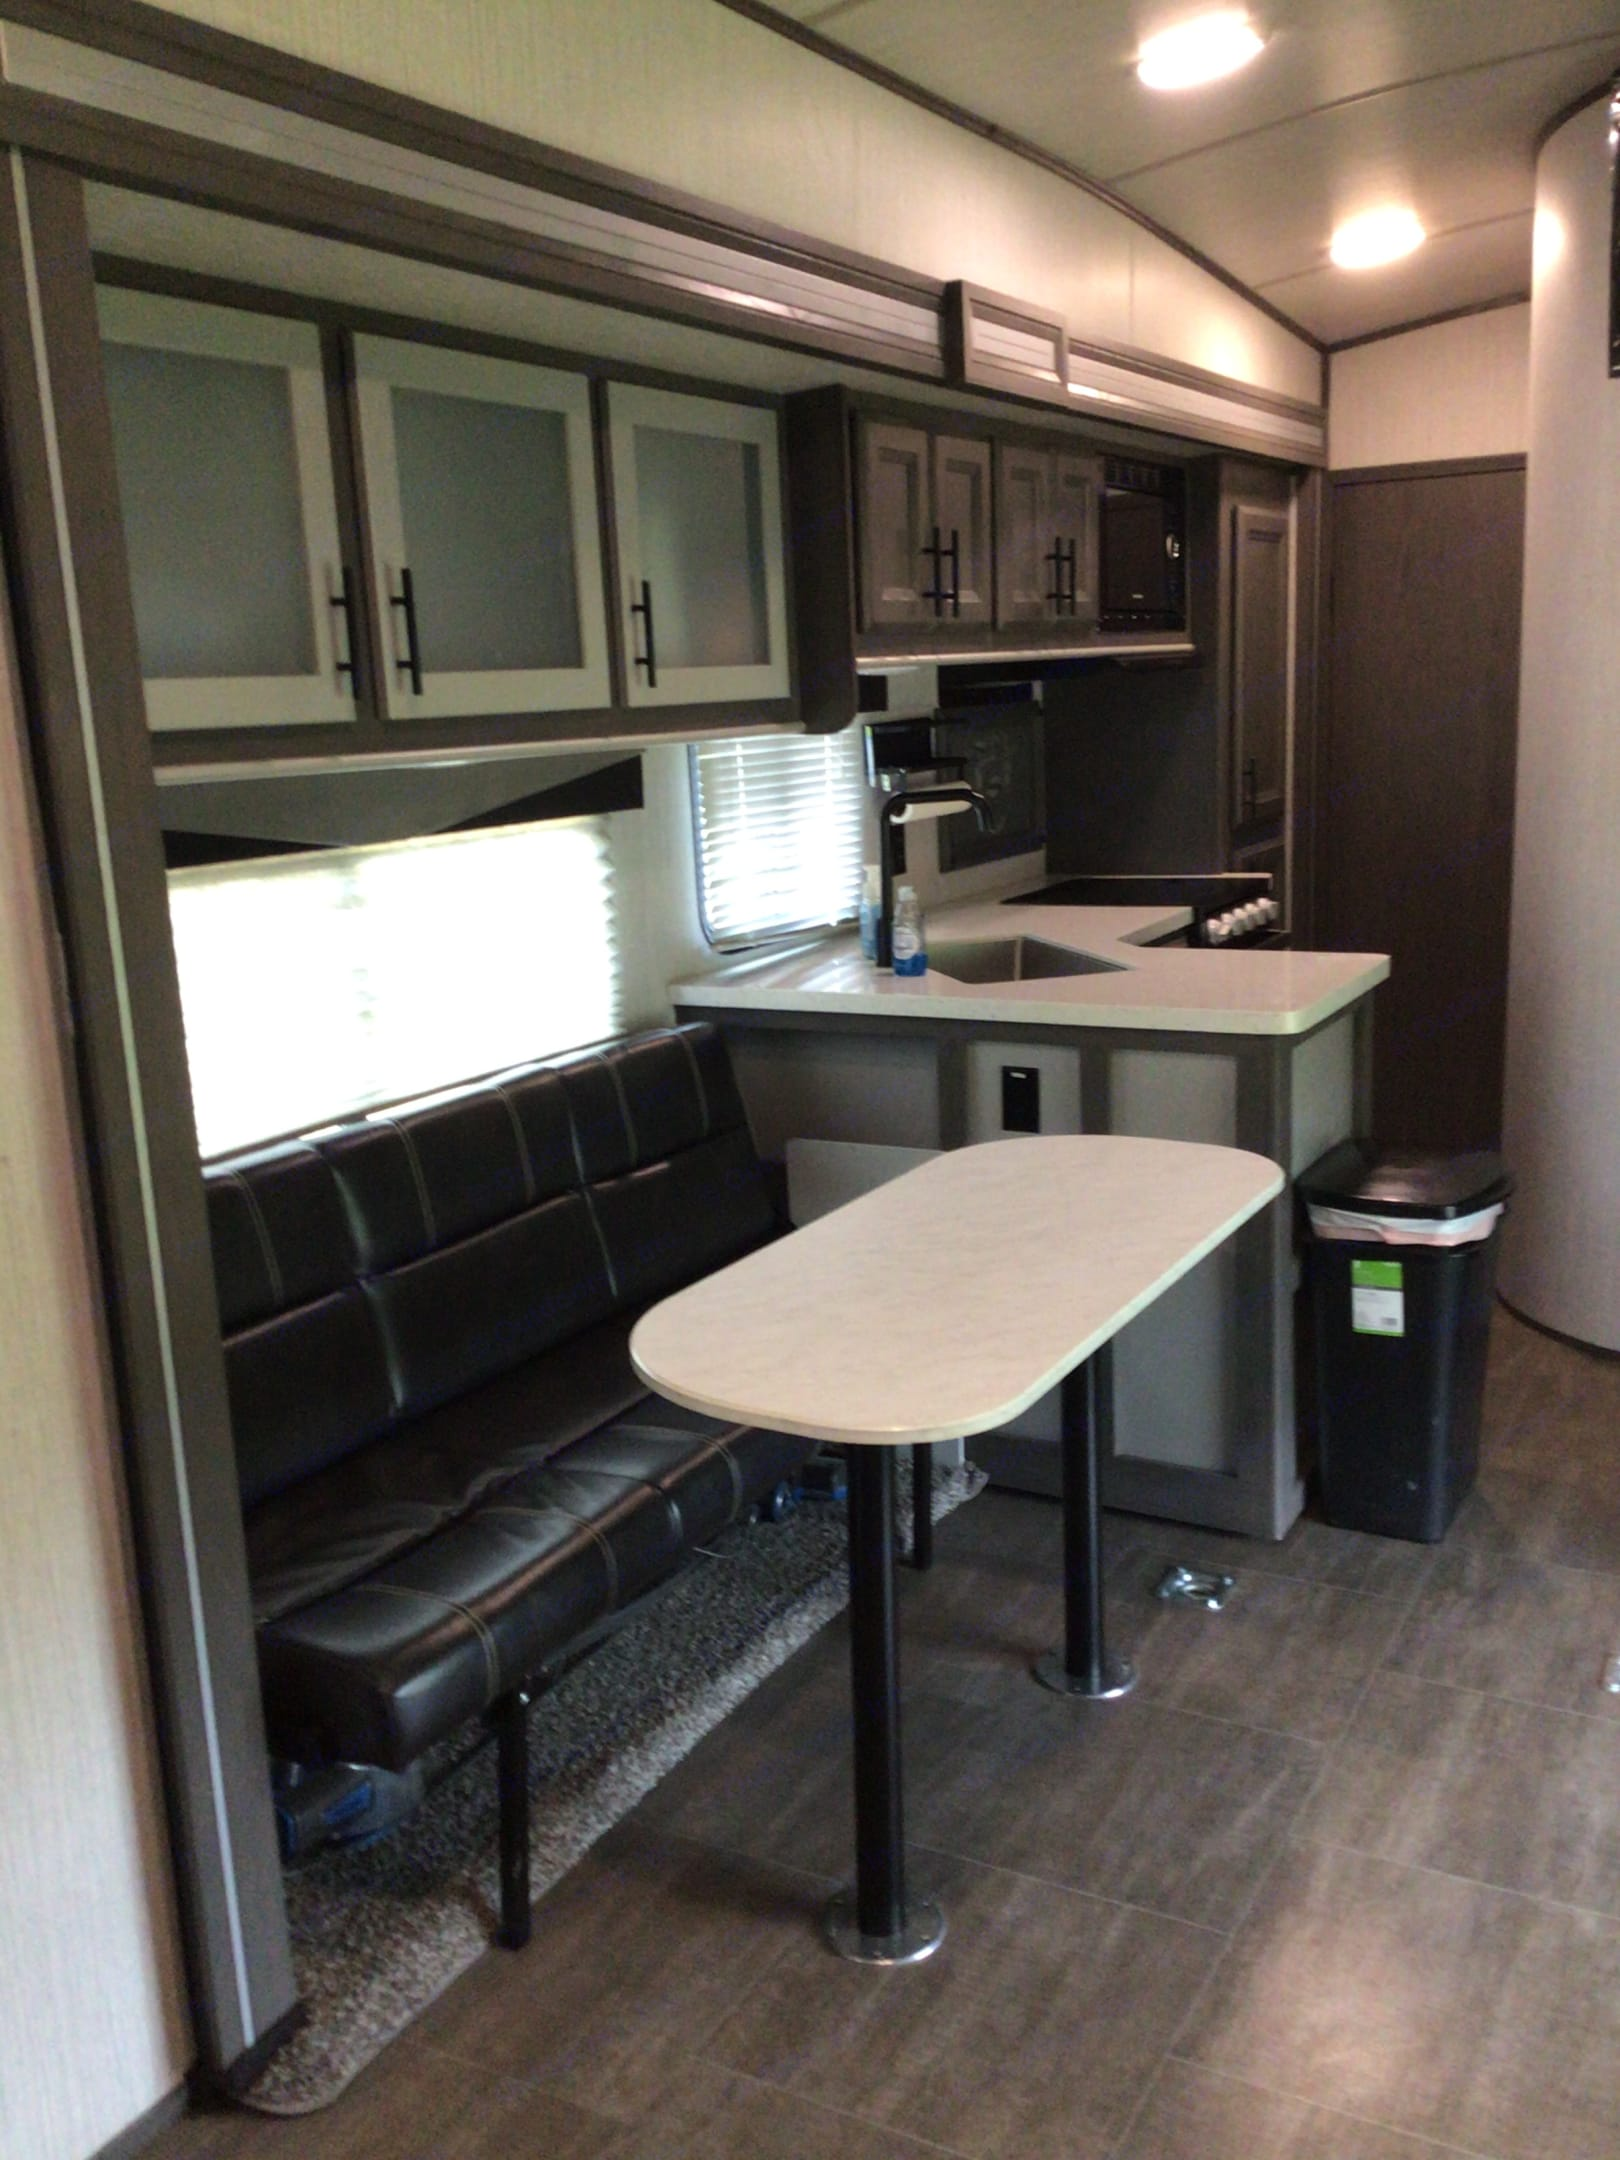 Dinette coverts to twin bed. Stryker STF2916 2020